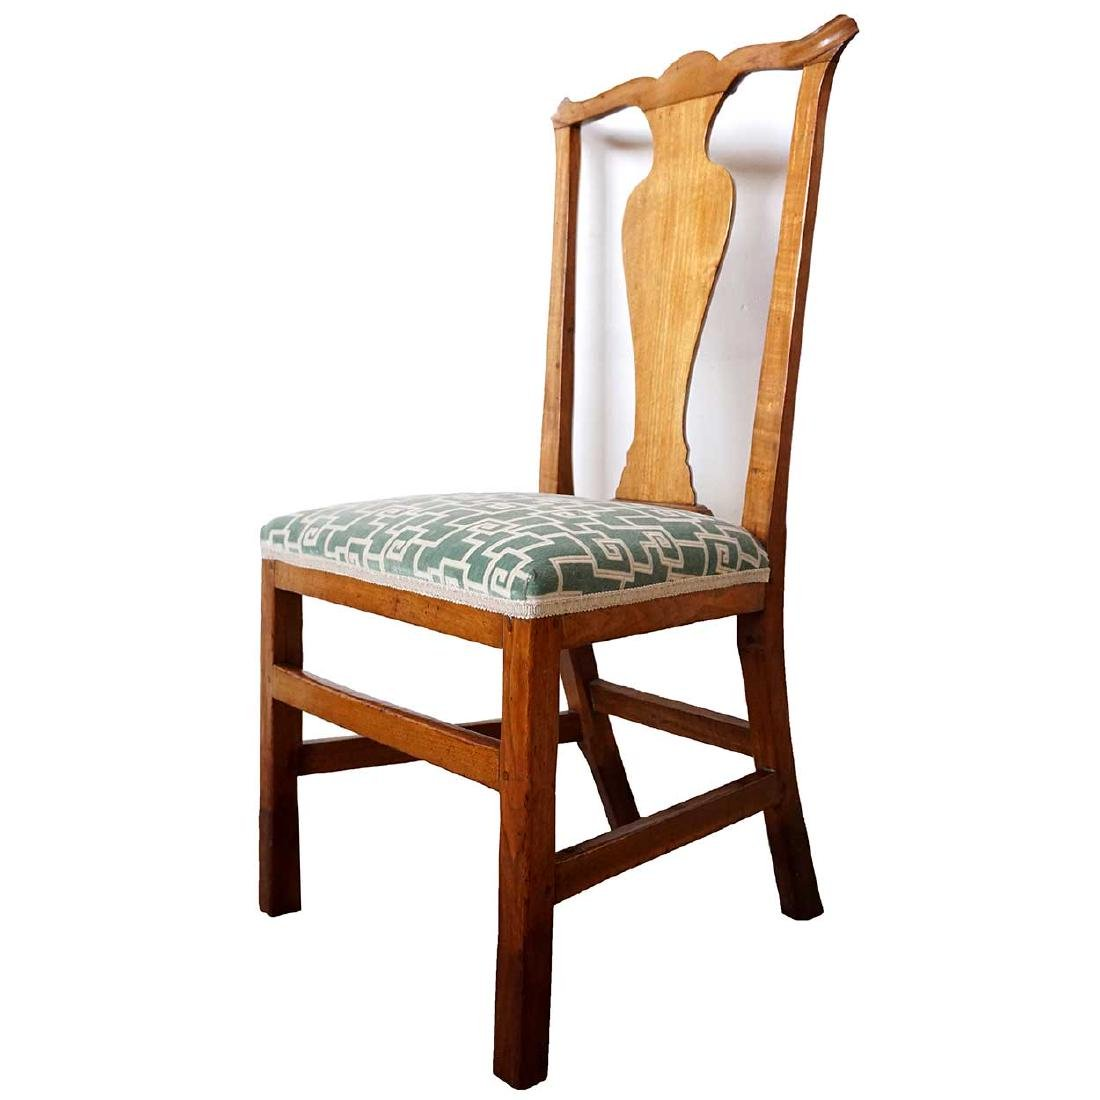 American New England Chippendale Mahogany Chair